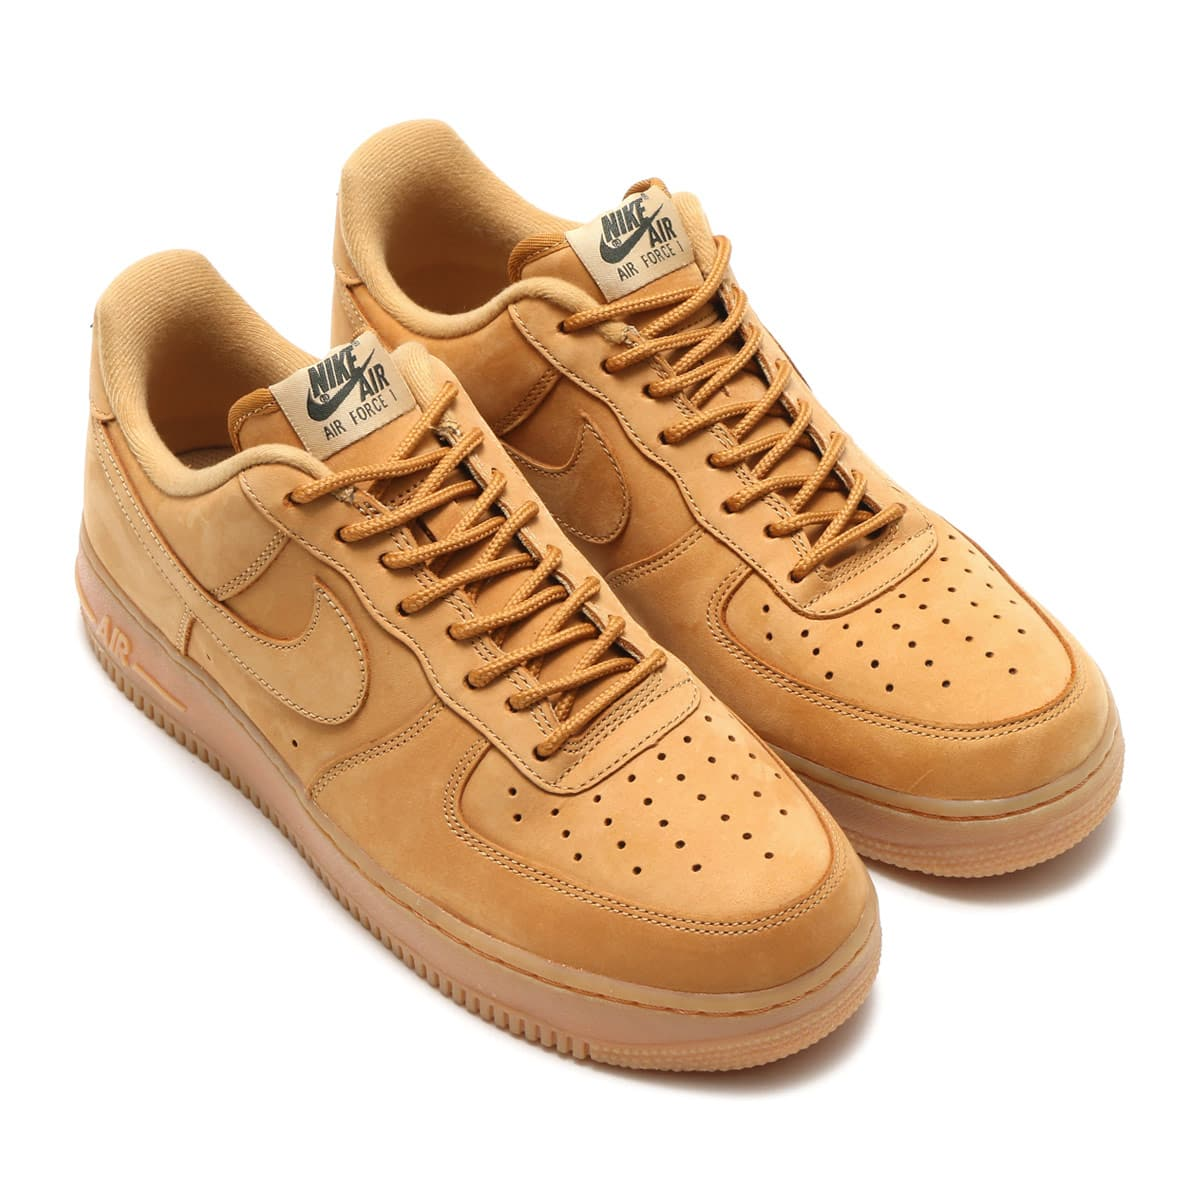 NIKE AIR FORCE 1 '07 WB  FLAX/FLAX-GUM LIGHT BROWN-OUTDOOR GREEN_photo_large